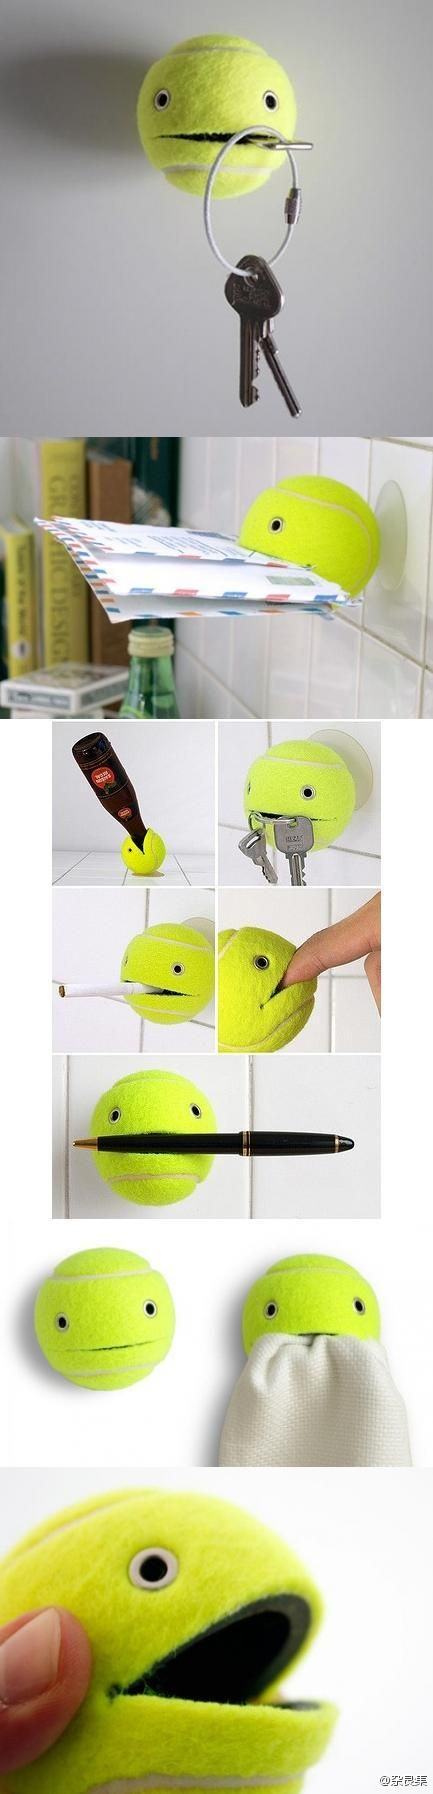 More uses for tennis balls.  **dad: Ball Holders, Stuff, Cute Ideas, Tennisball, Things, Keys Holders, Diy, Tennis Ball, Crafts